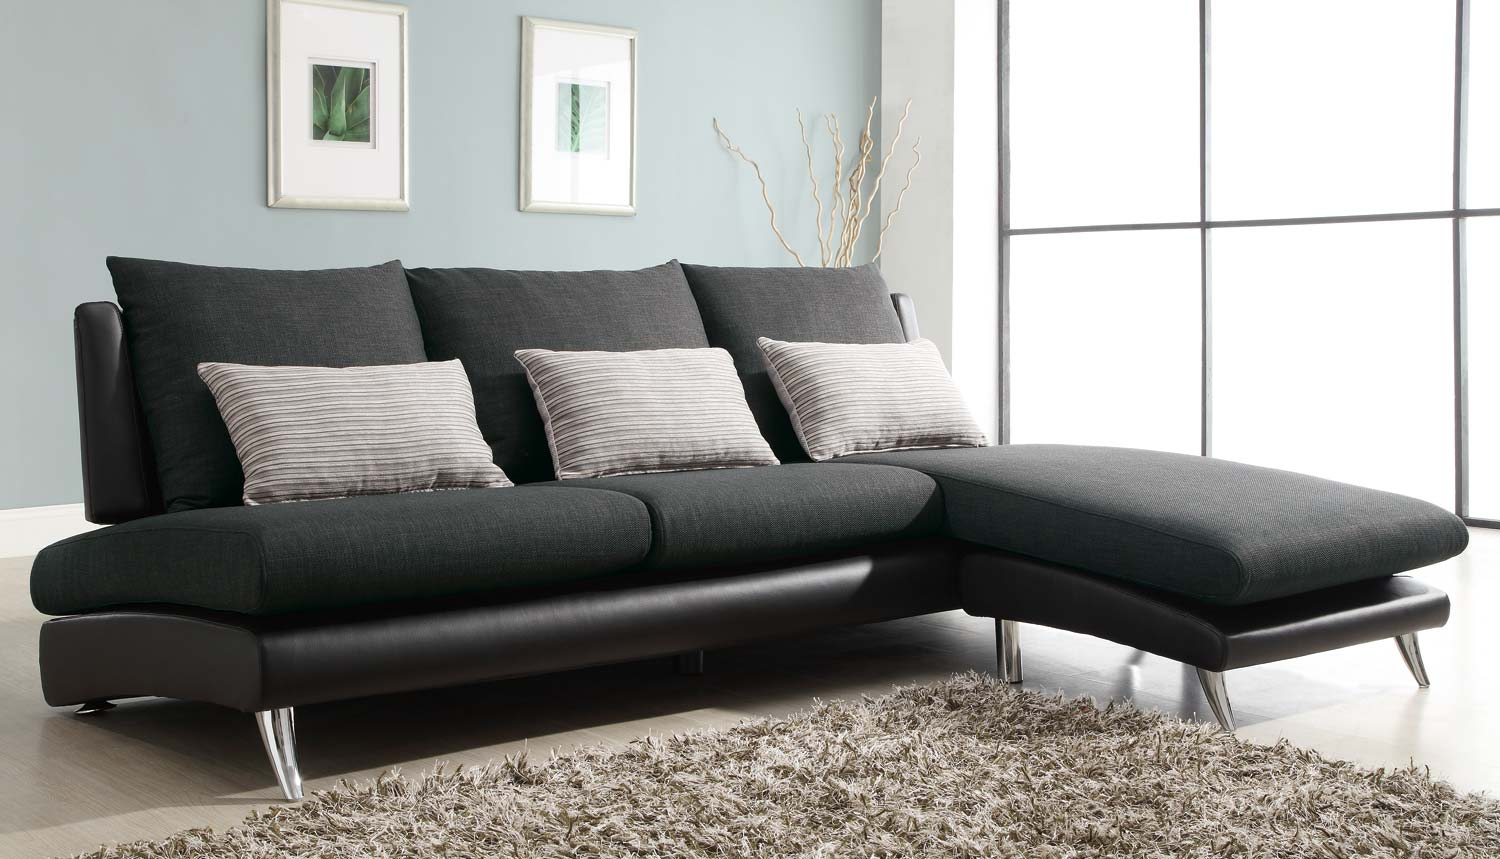 Homelegance codman reversible sectional sofa chaise dark for Black and grey couch